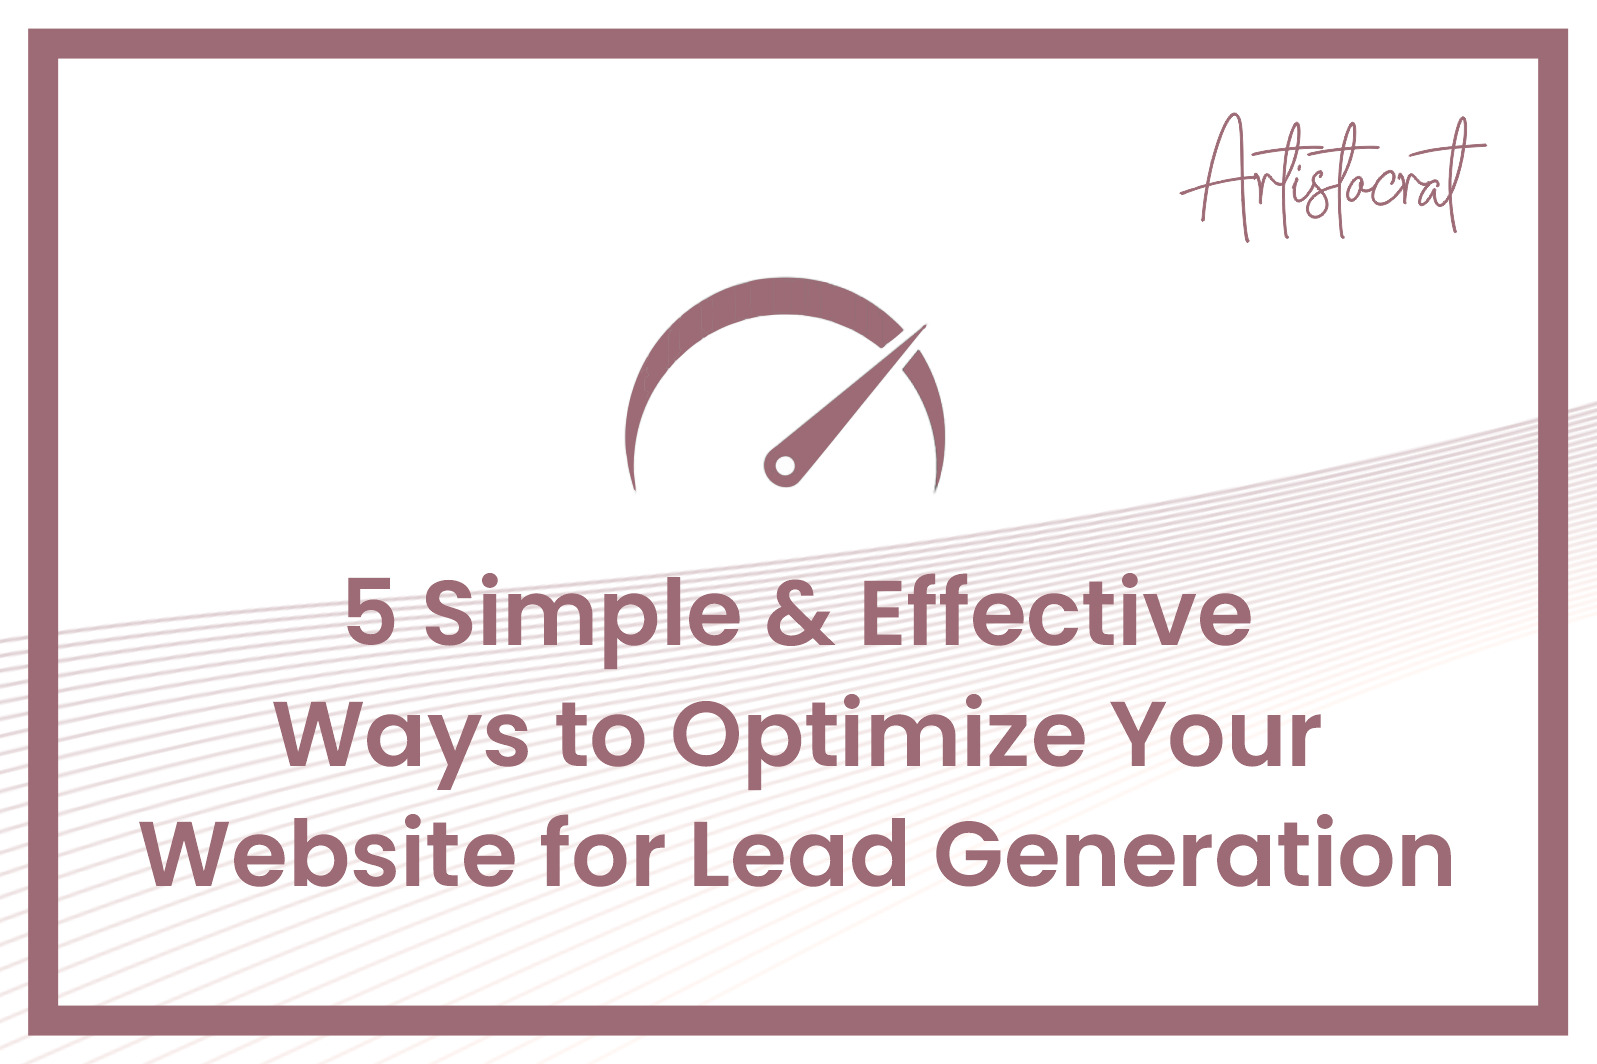 Effective-Ways-Optimize-Your-Website-Lead-Generation